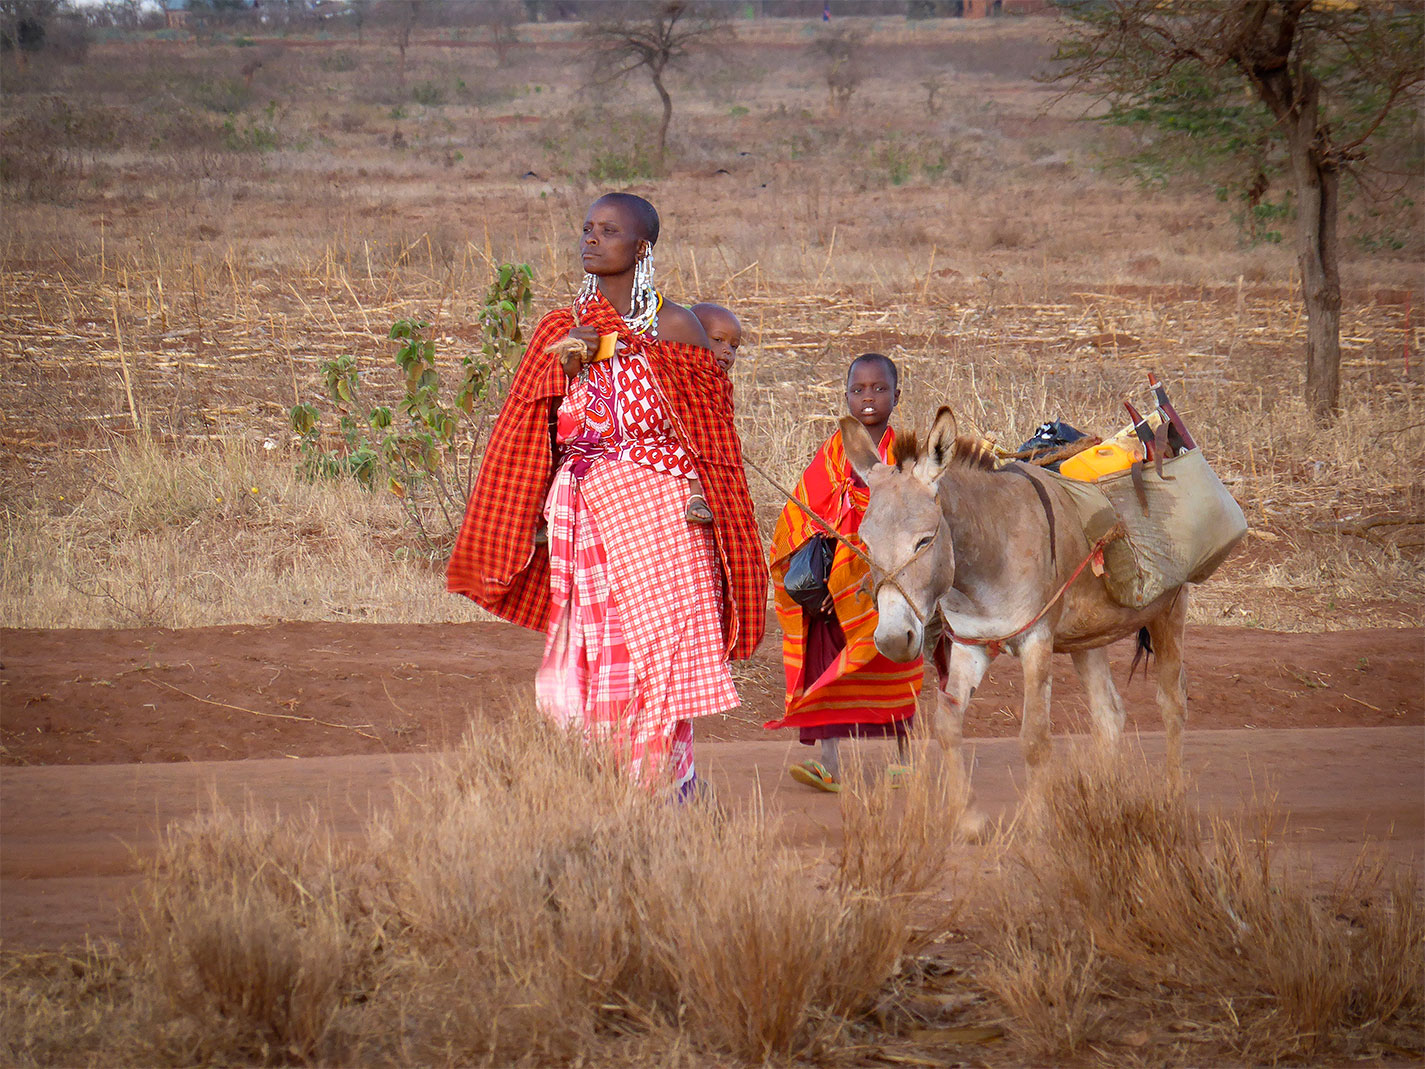 Masaai woman and children